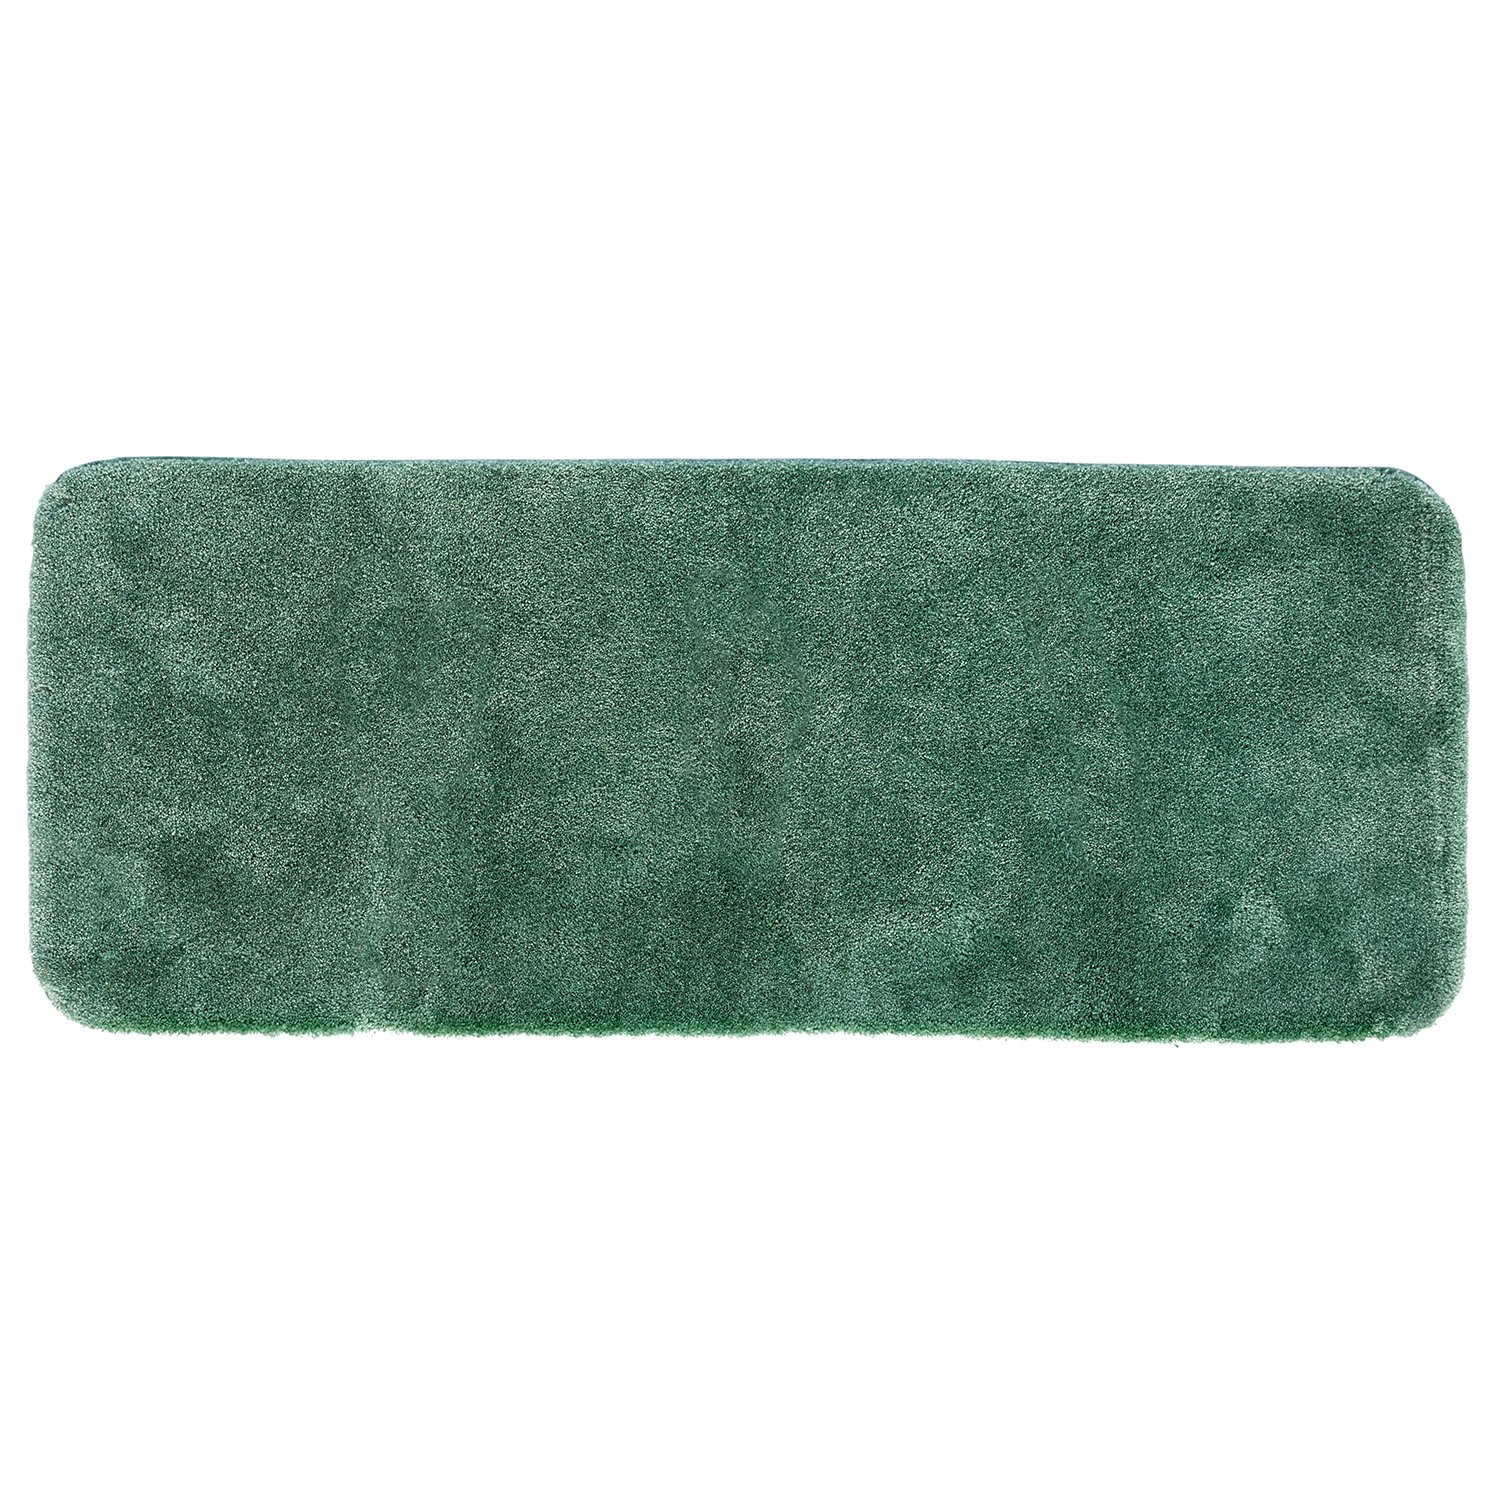 Mohawk Home Spa 2' x 5' Bath Rug in Spruce